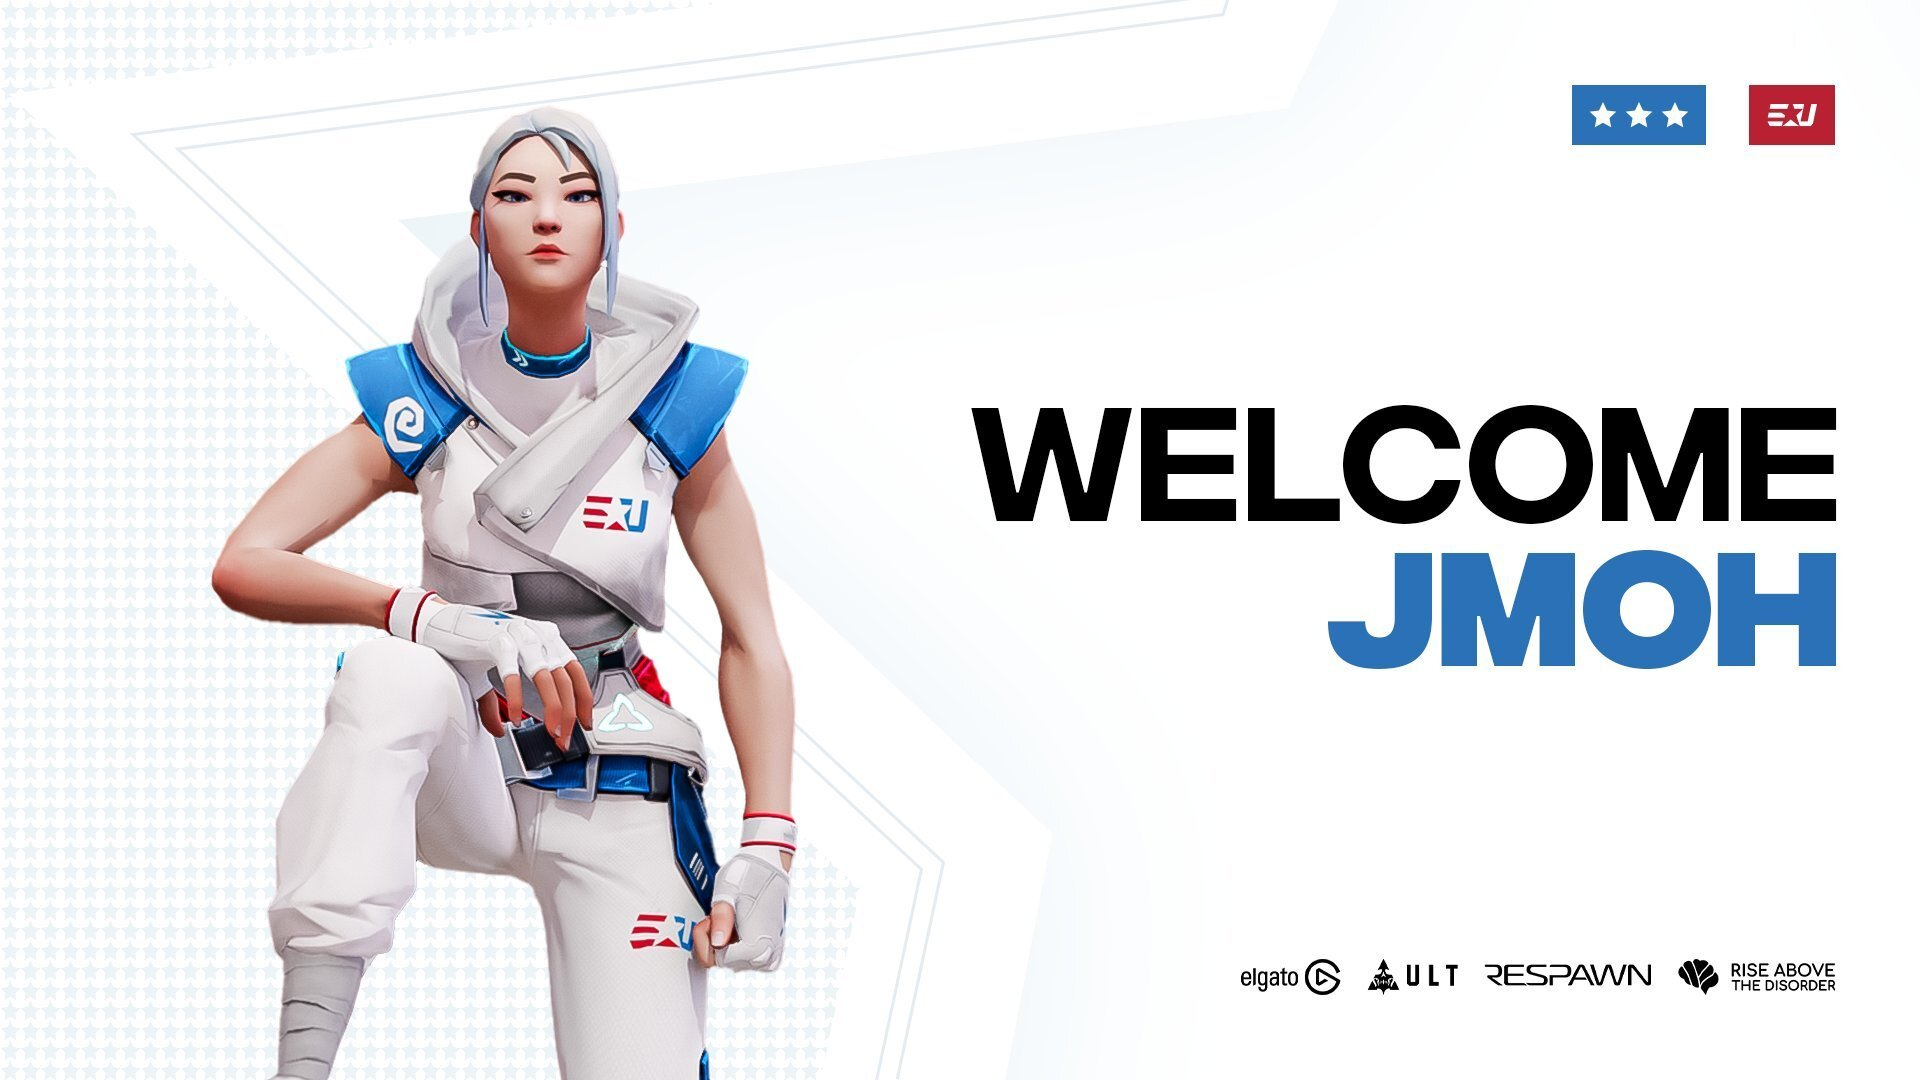 eUNITED officially sign jmoh to Valorant Roster